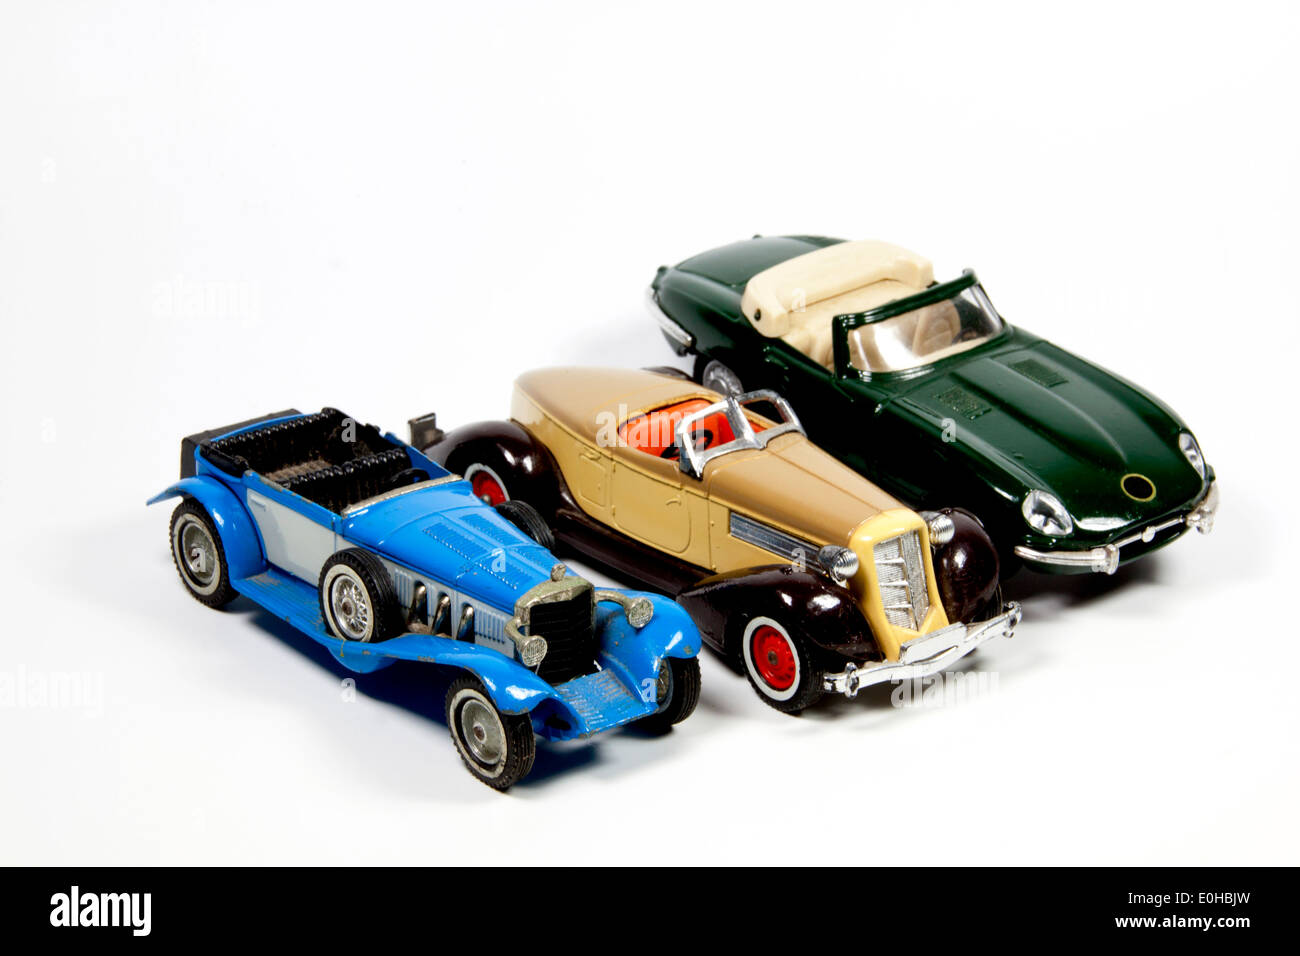 collection of three toy model cars on white - Stock Image